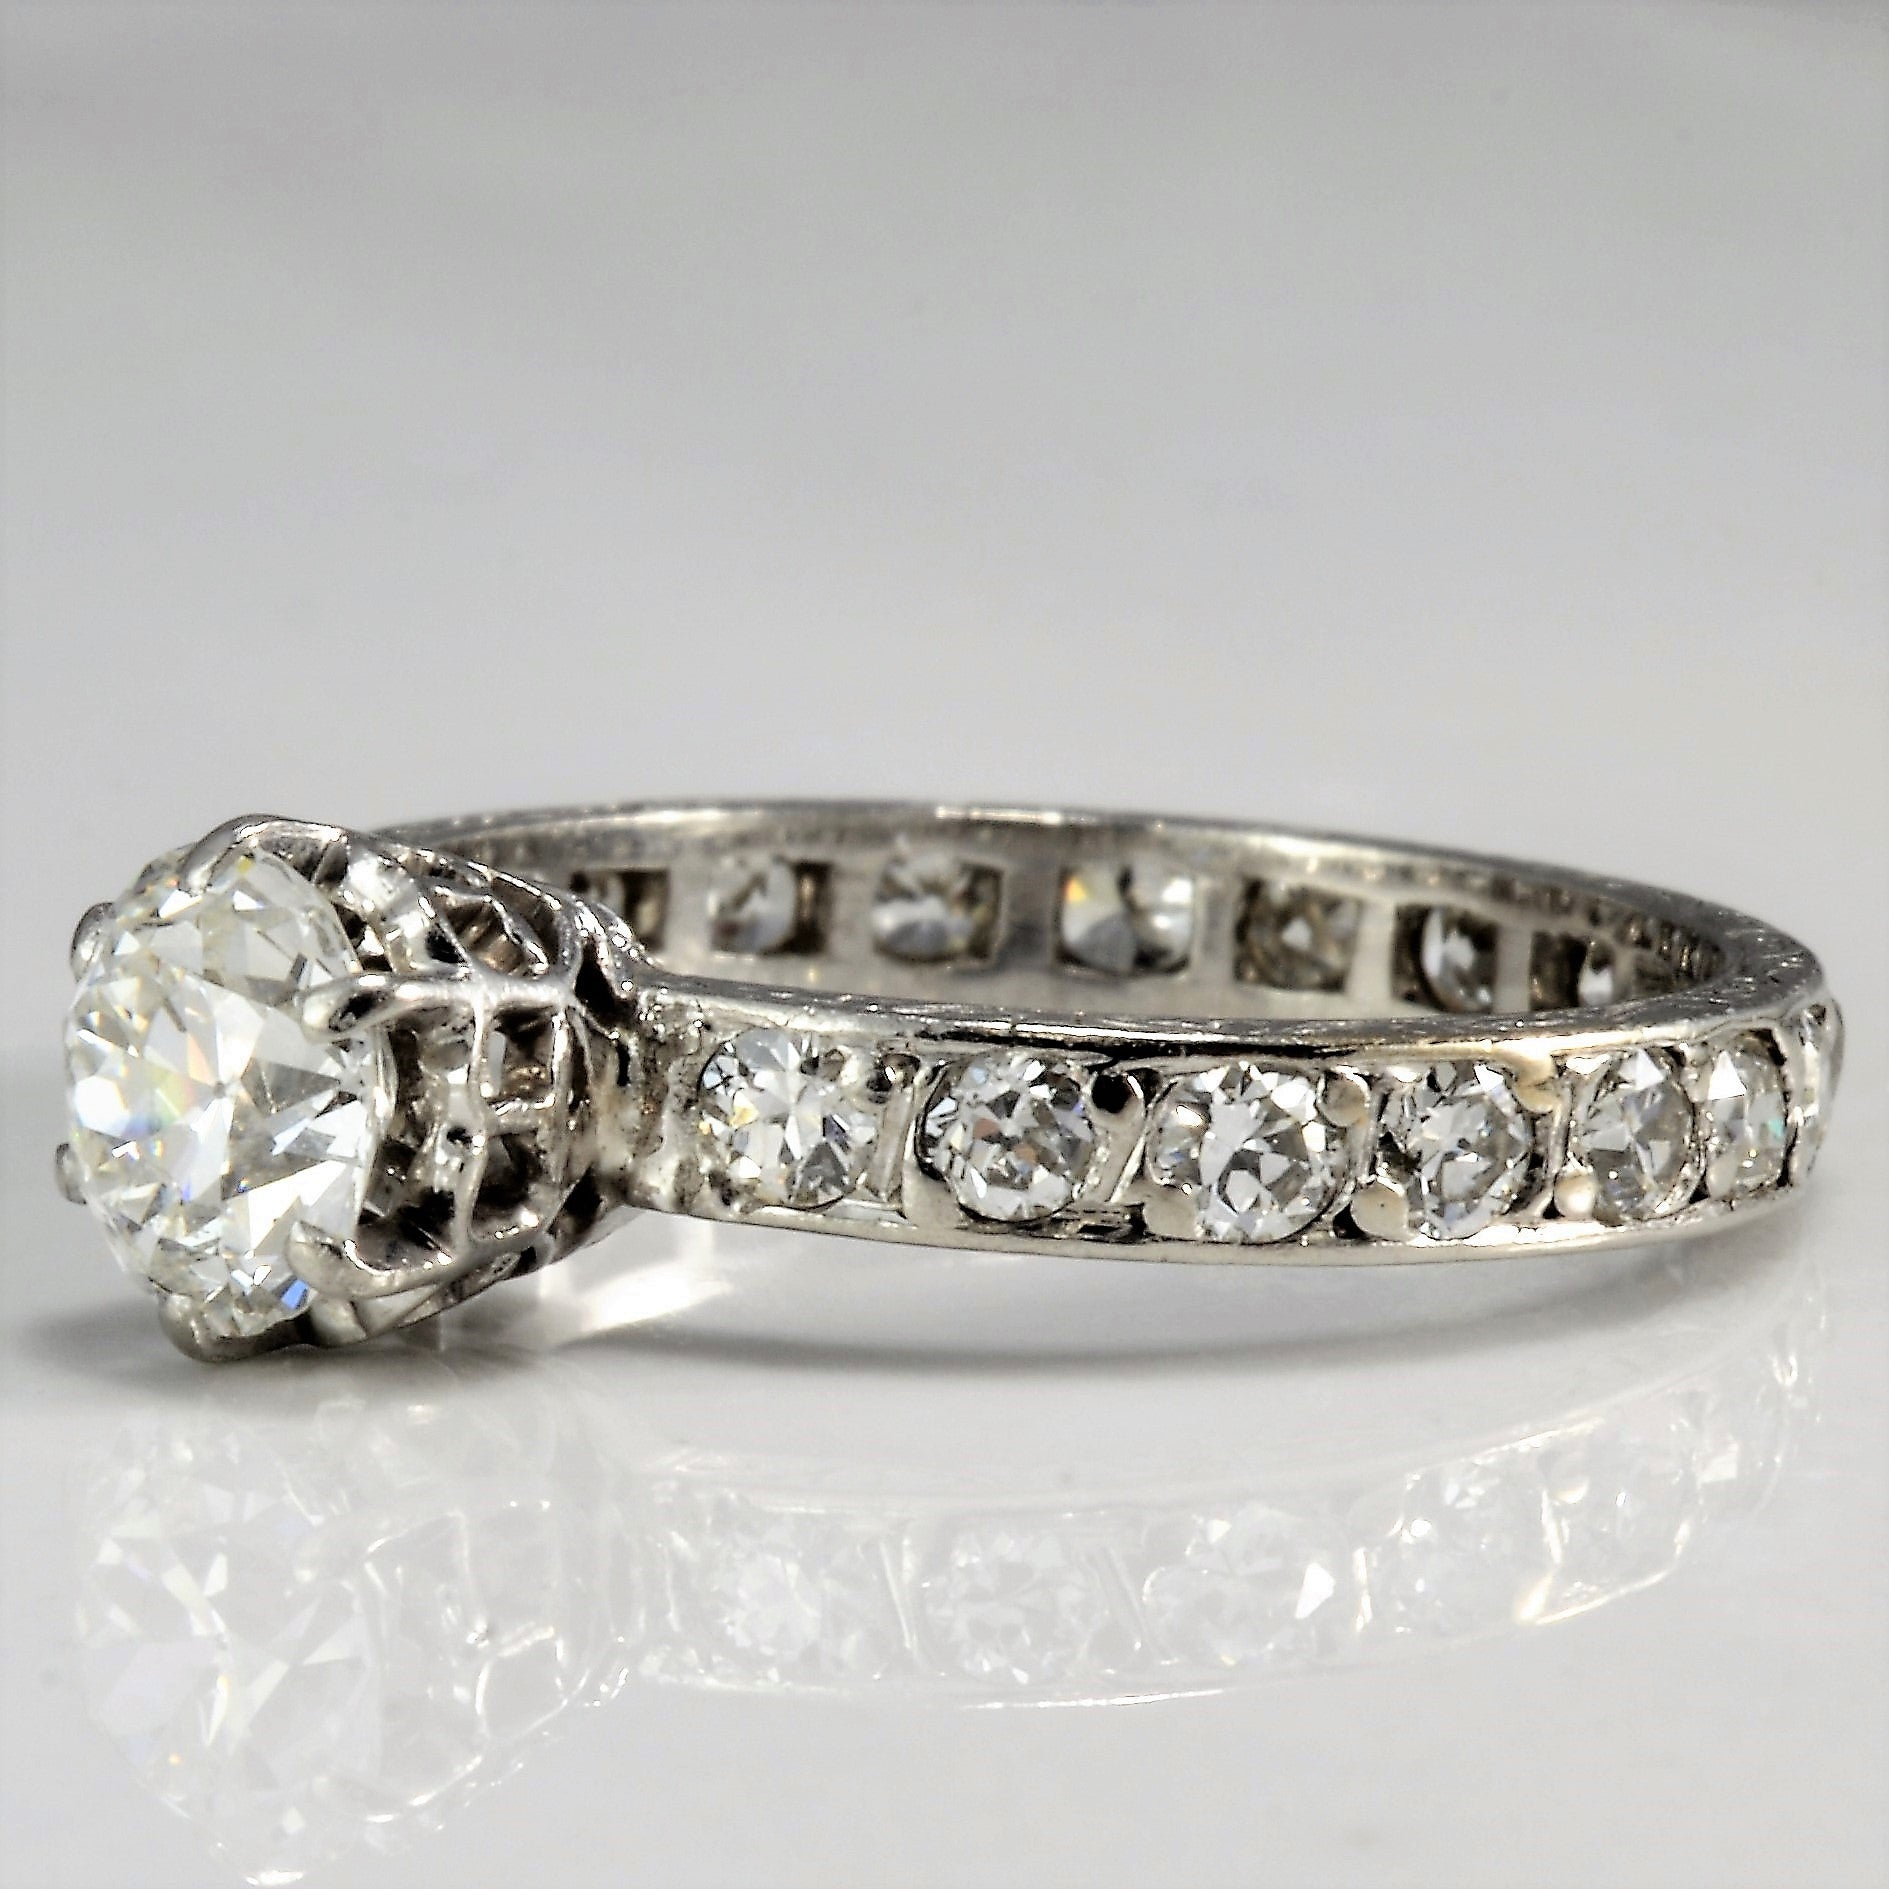 Old European Cut Eternity Band Engagement Ring | 1.10 ctw, SZ 5.5 |